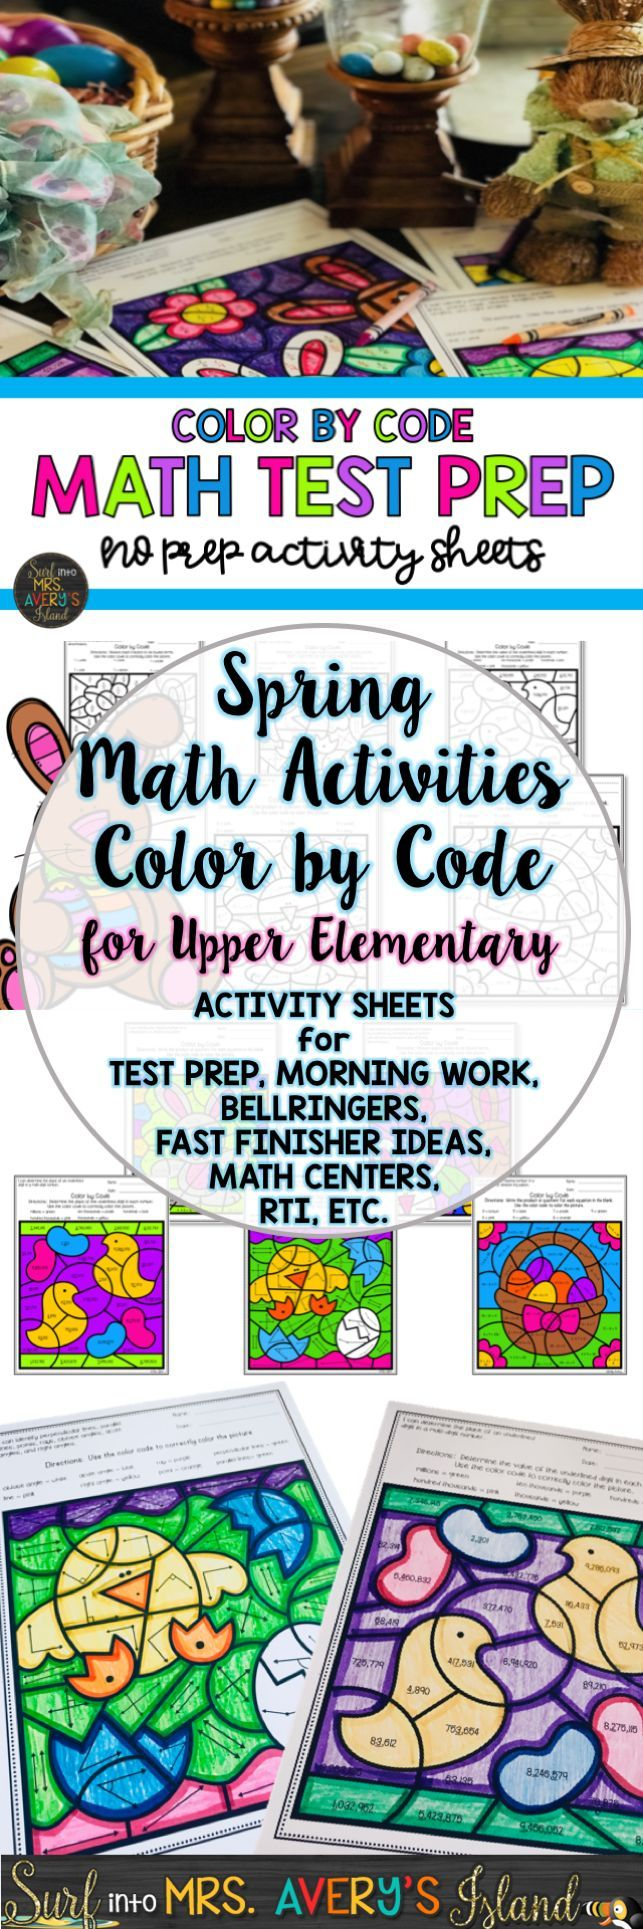 Easter Color by Code Math Test Prep | Elementary teacher, Fun ...